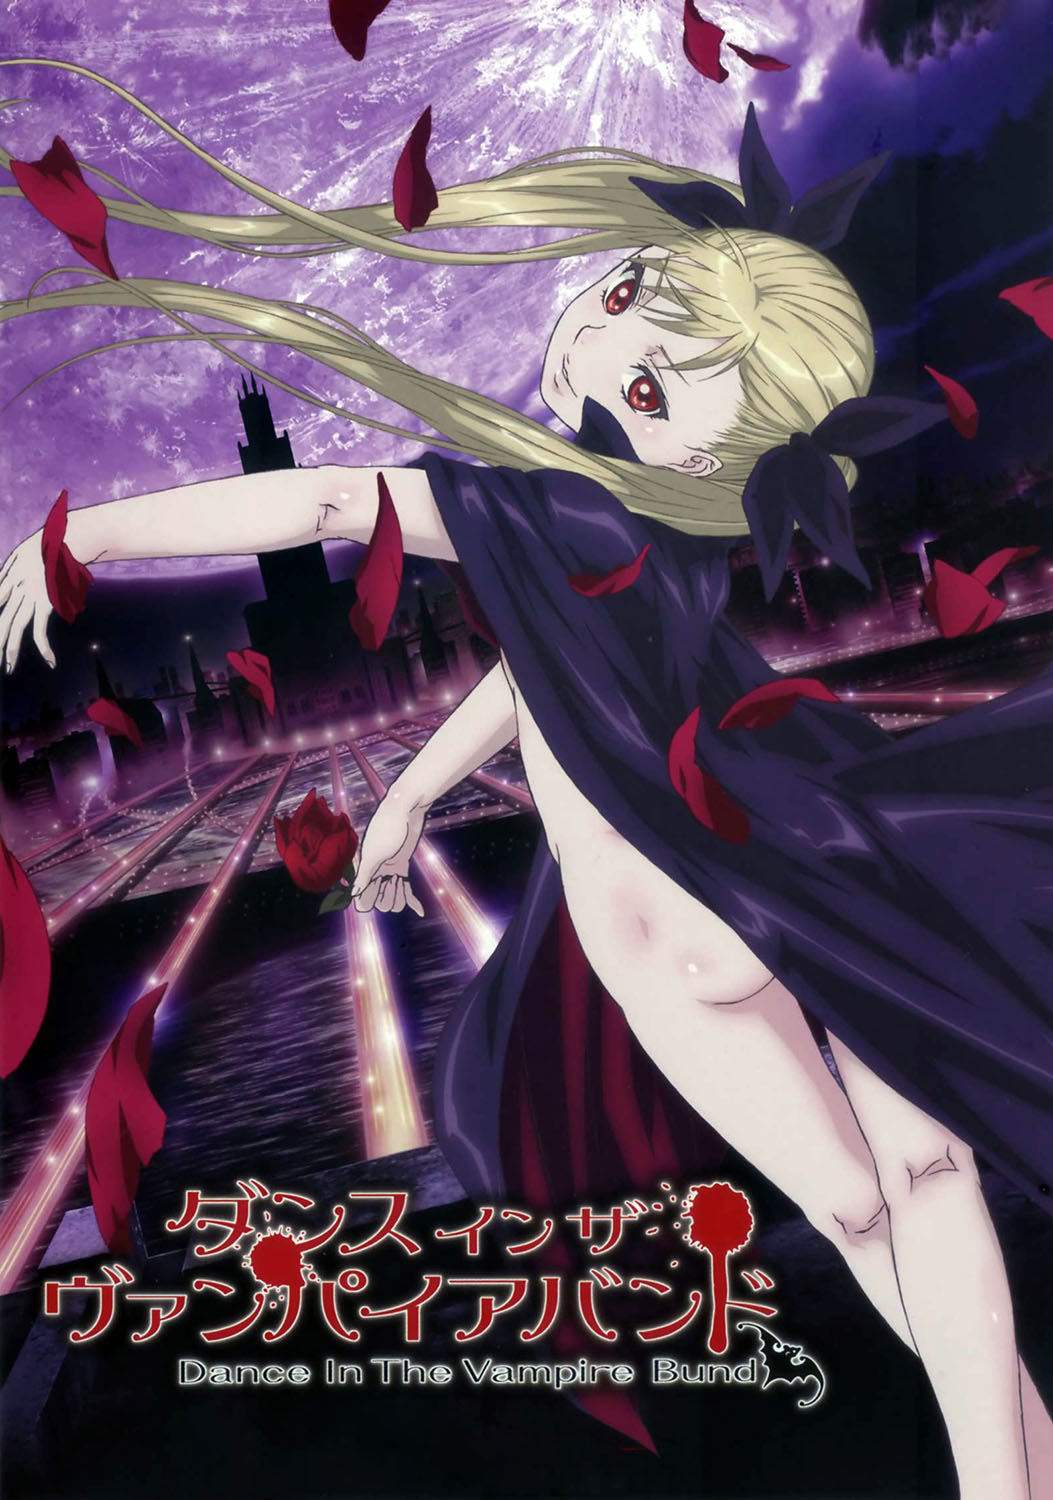 Dance in the Vampire Bund (2010) - recenzja anime - rascal.pl